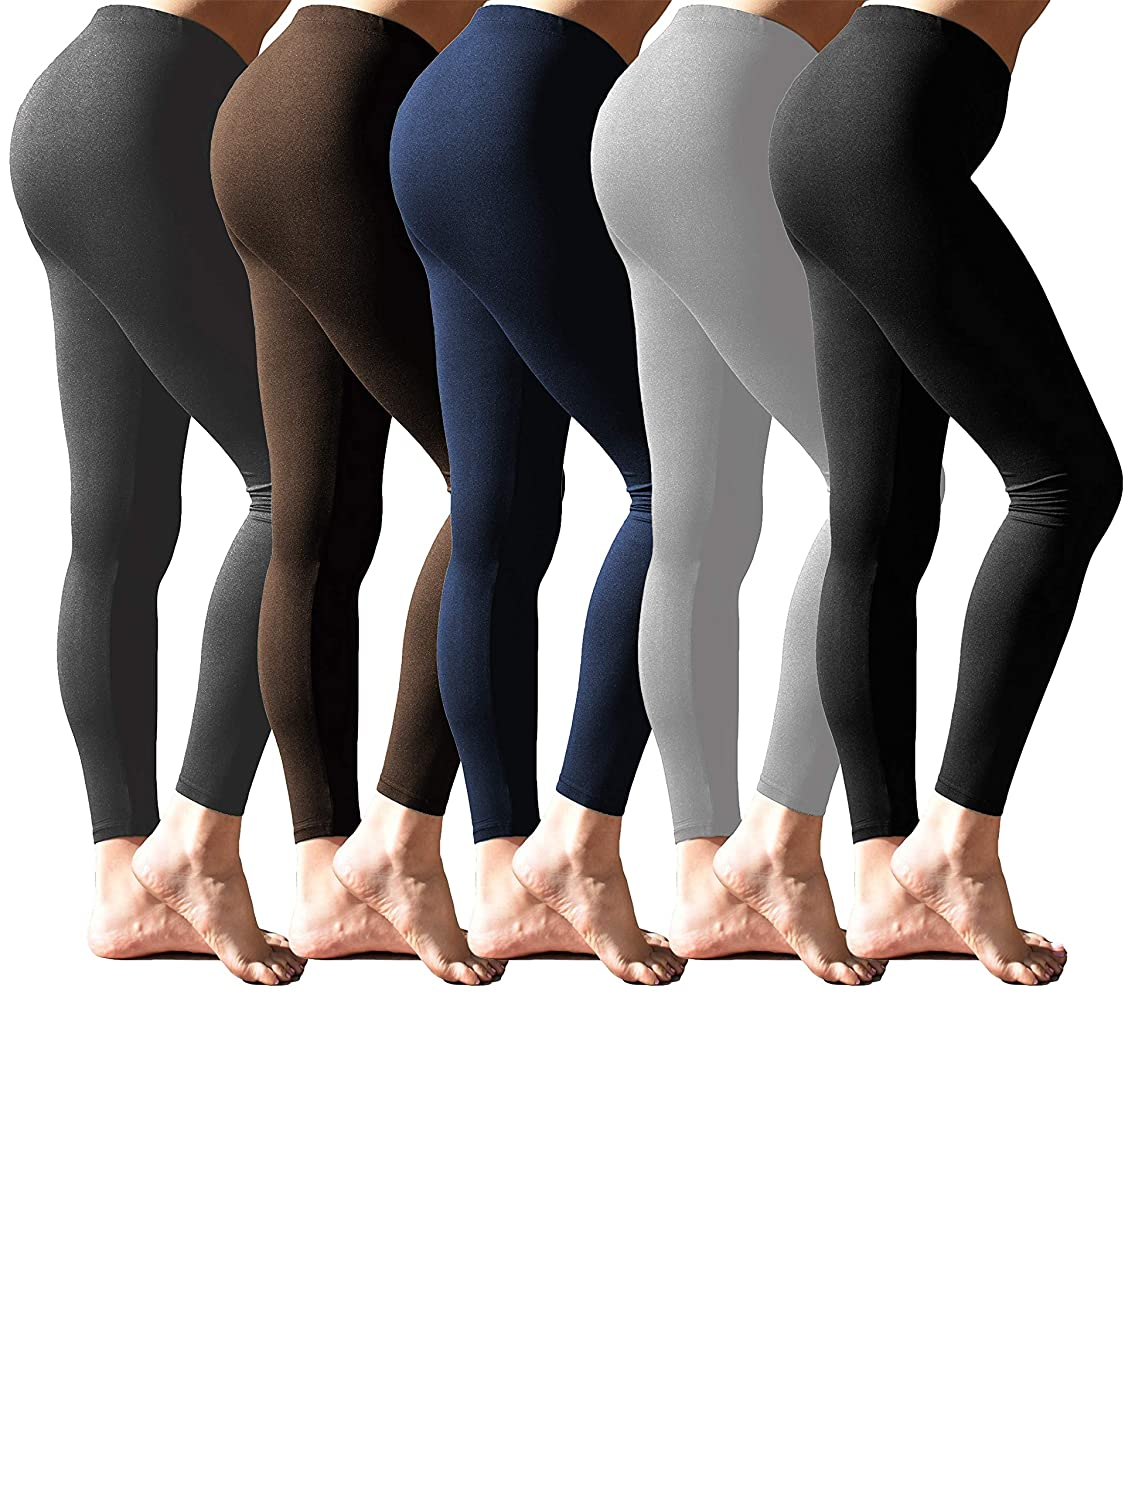 Black Charcoal Navy Grey Brown BEST BRANDS BASICS Women's 5 Pack Extra Super Soft & Stretchy Long Leggings Tights   One Size